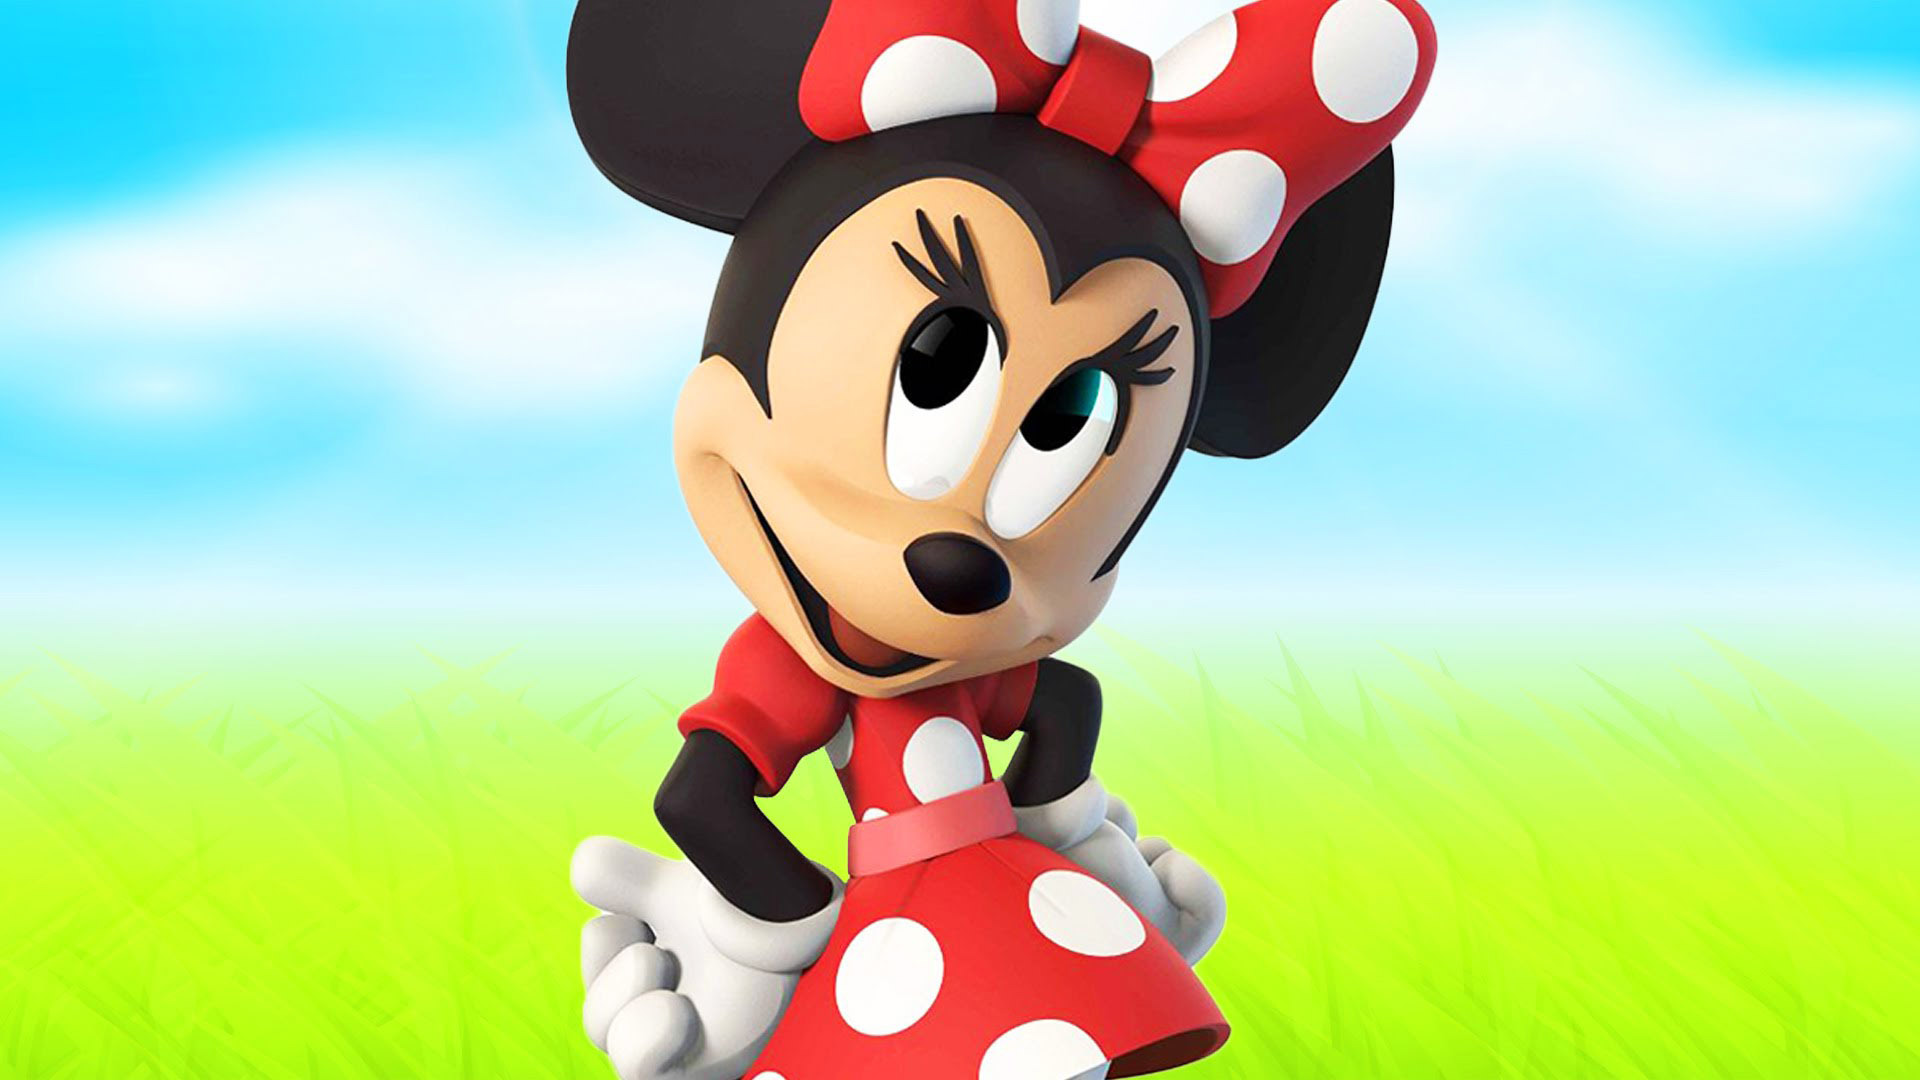 Minnie Mouse HD